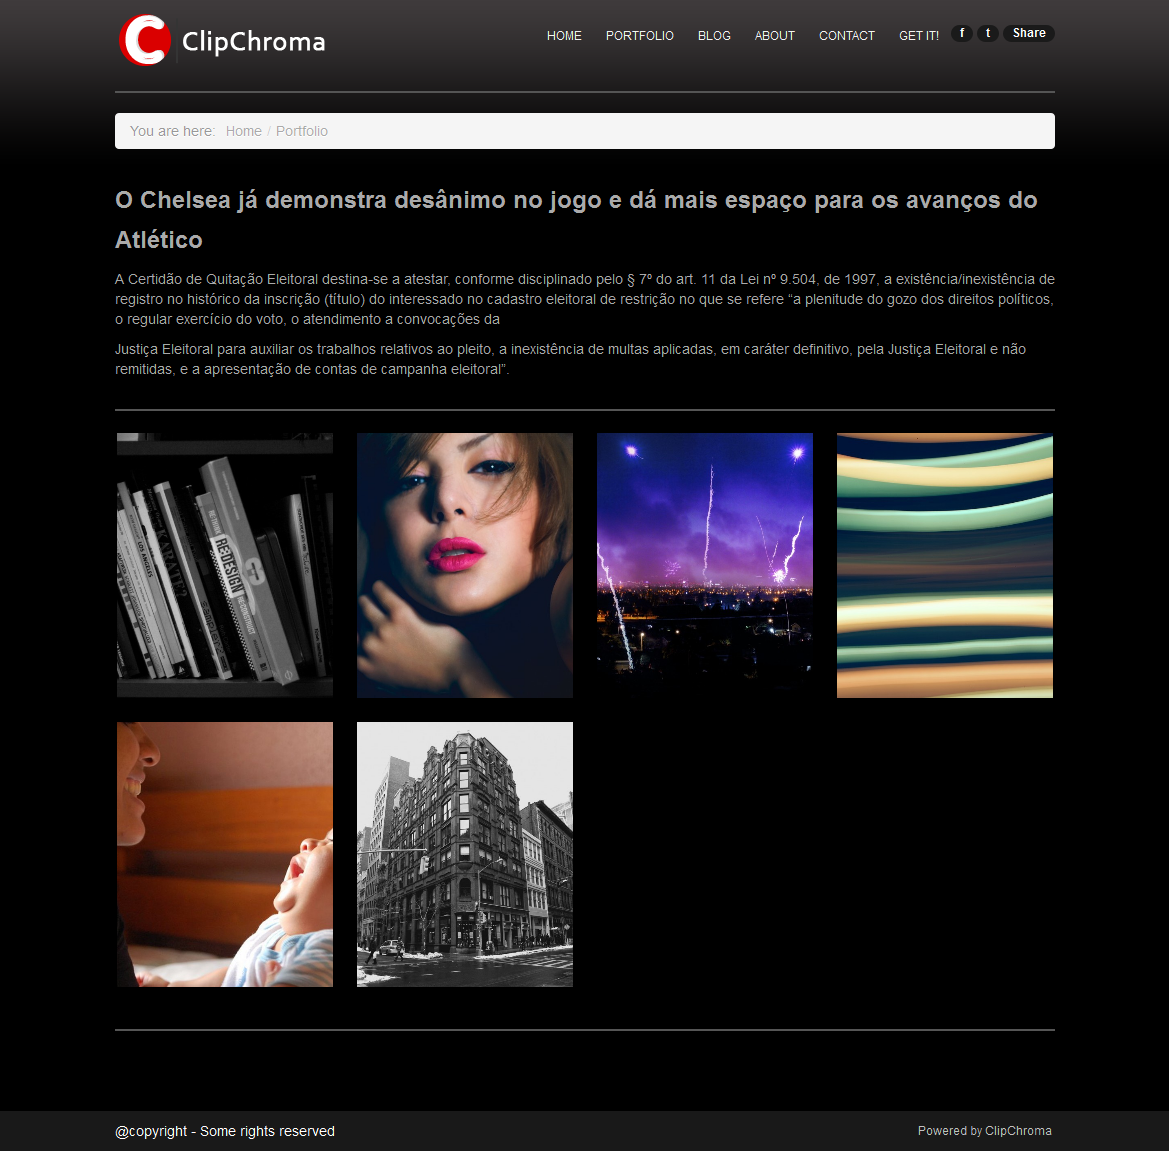 ClipChroma - The Photography Website Solution